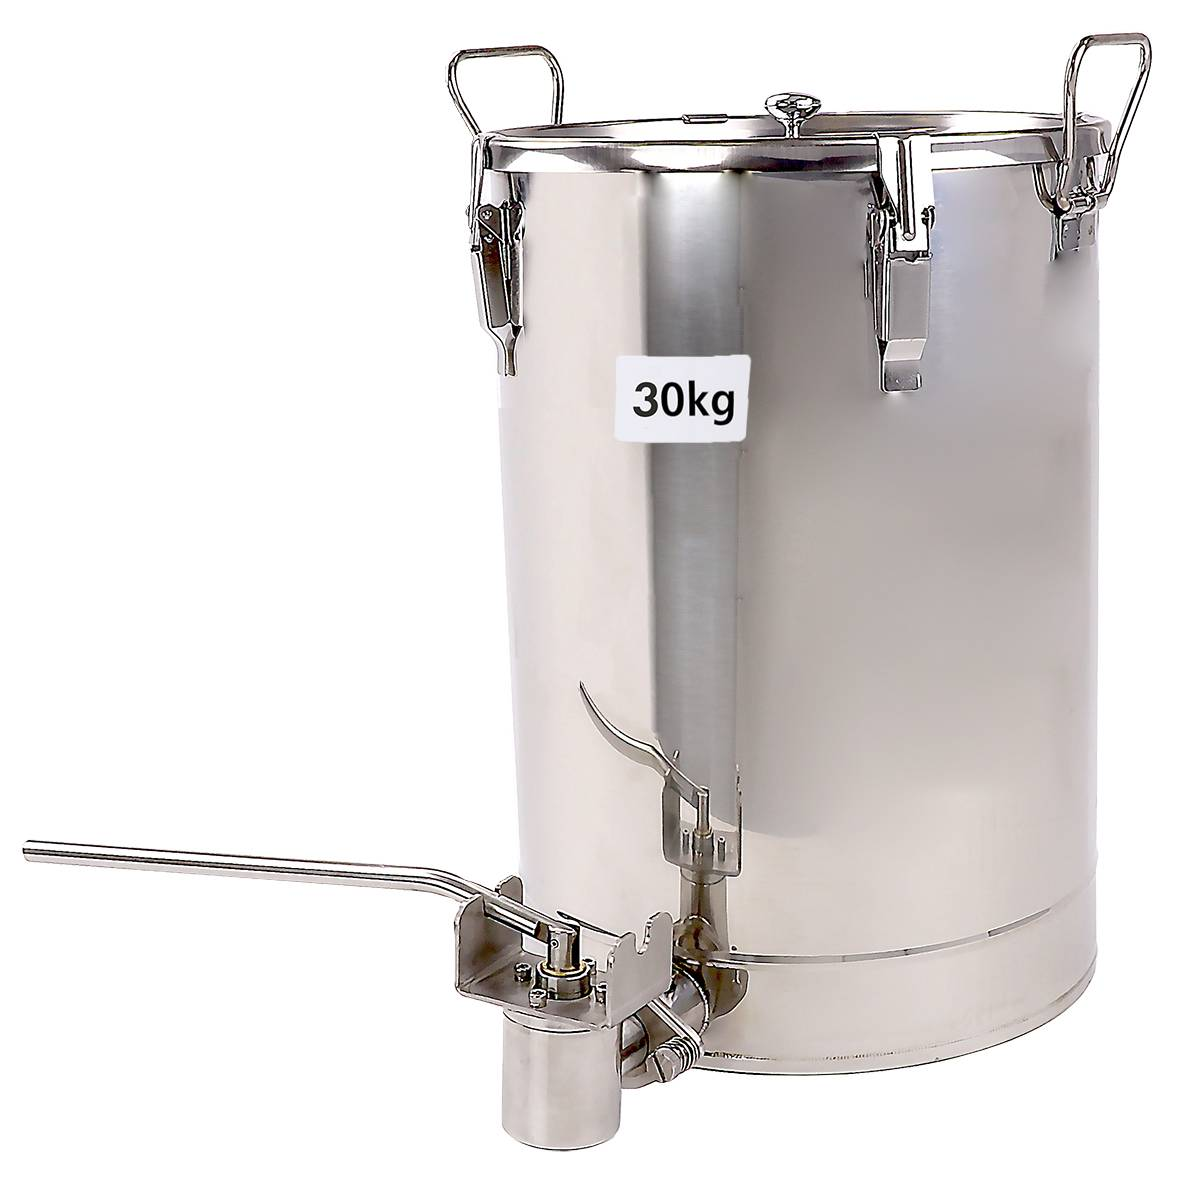 Manual Stainless Steel Bottle Filler and Deluxe 30kg Storage tank